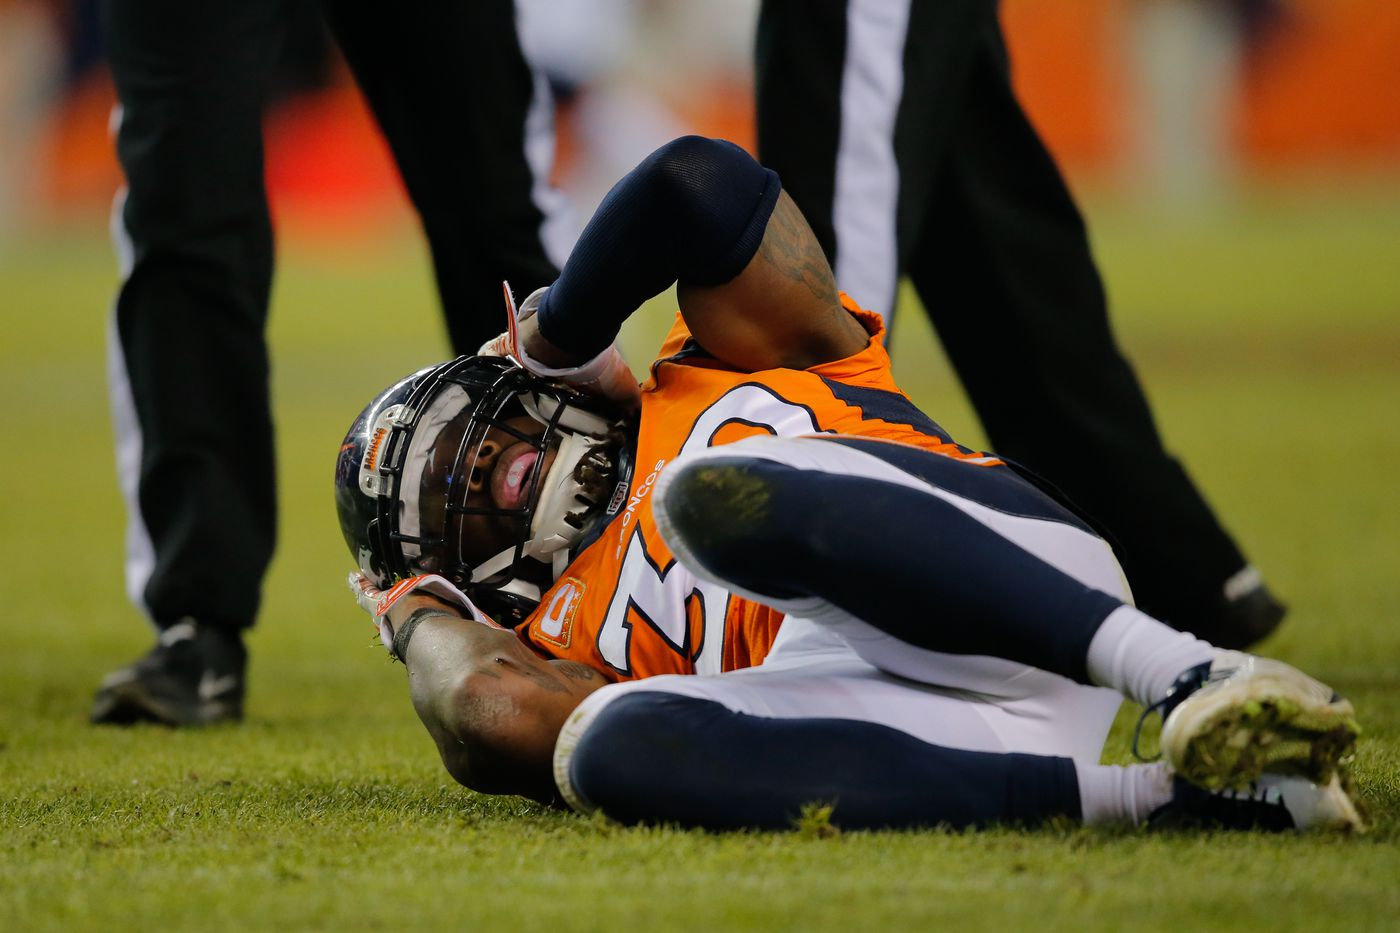 Repeated Head Hits Not Just Concussions >> Super Bowl 2019 Football Concussions The Link Between Head